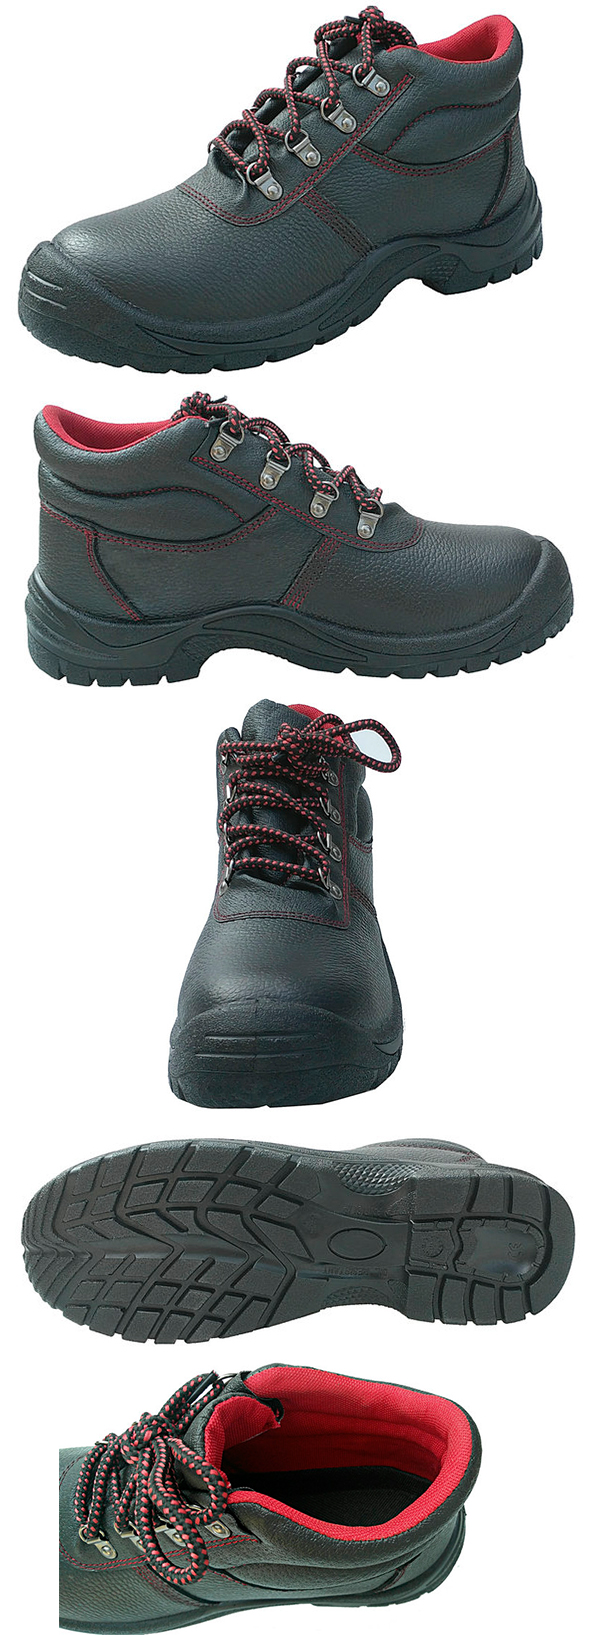 SS6B025-X Middle Cut Basic Design Safety Shoes